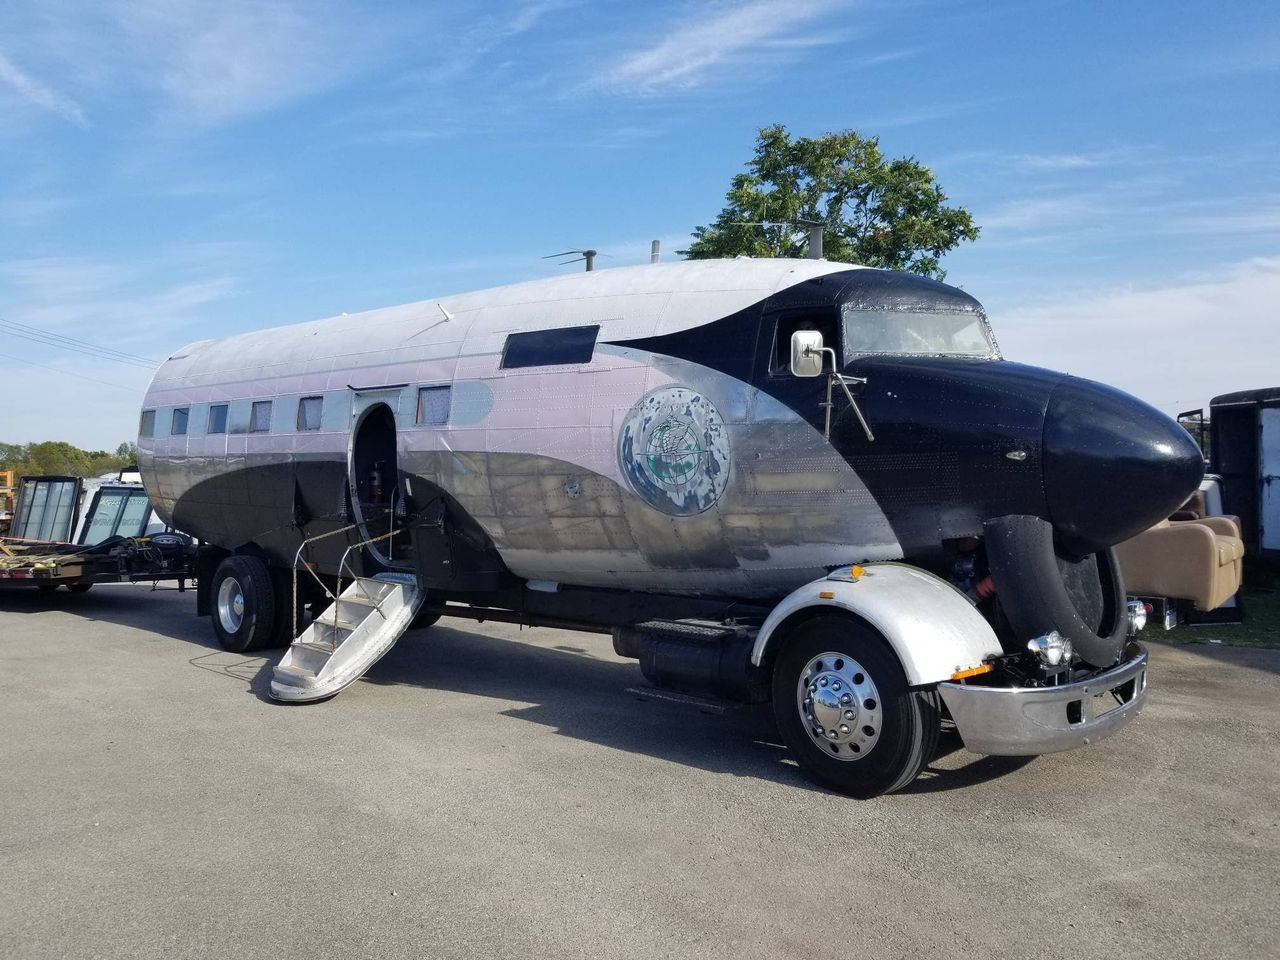 An Air Force Veteran Turned a Troop Transport Plane into an Insane-Looking RV